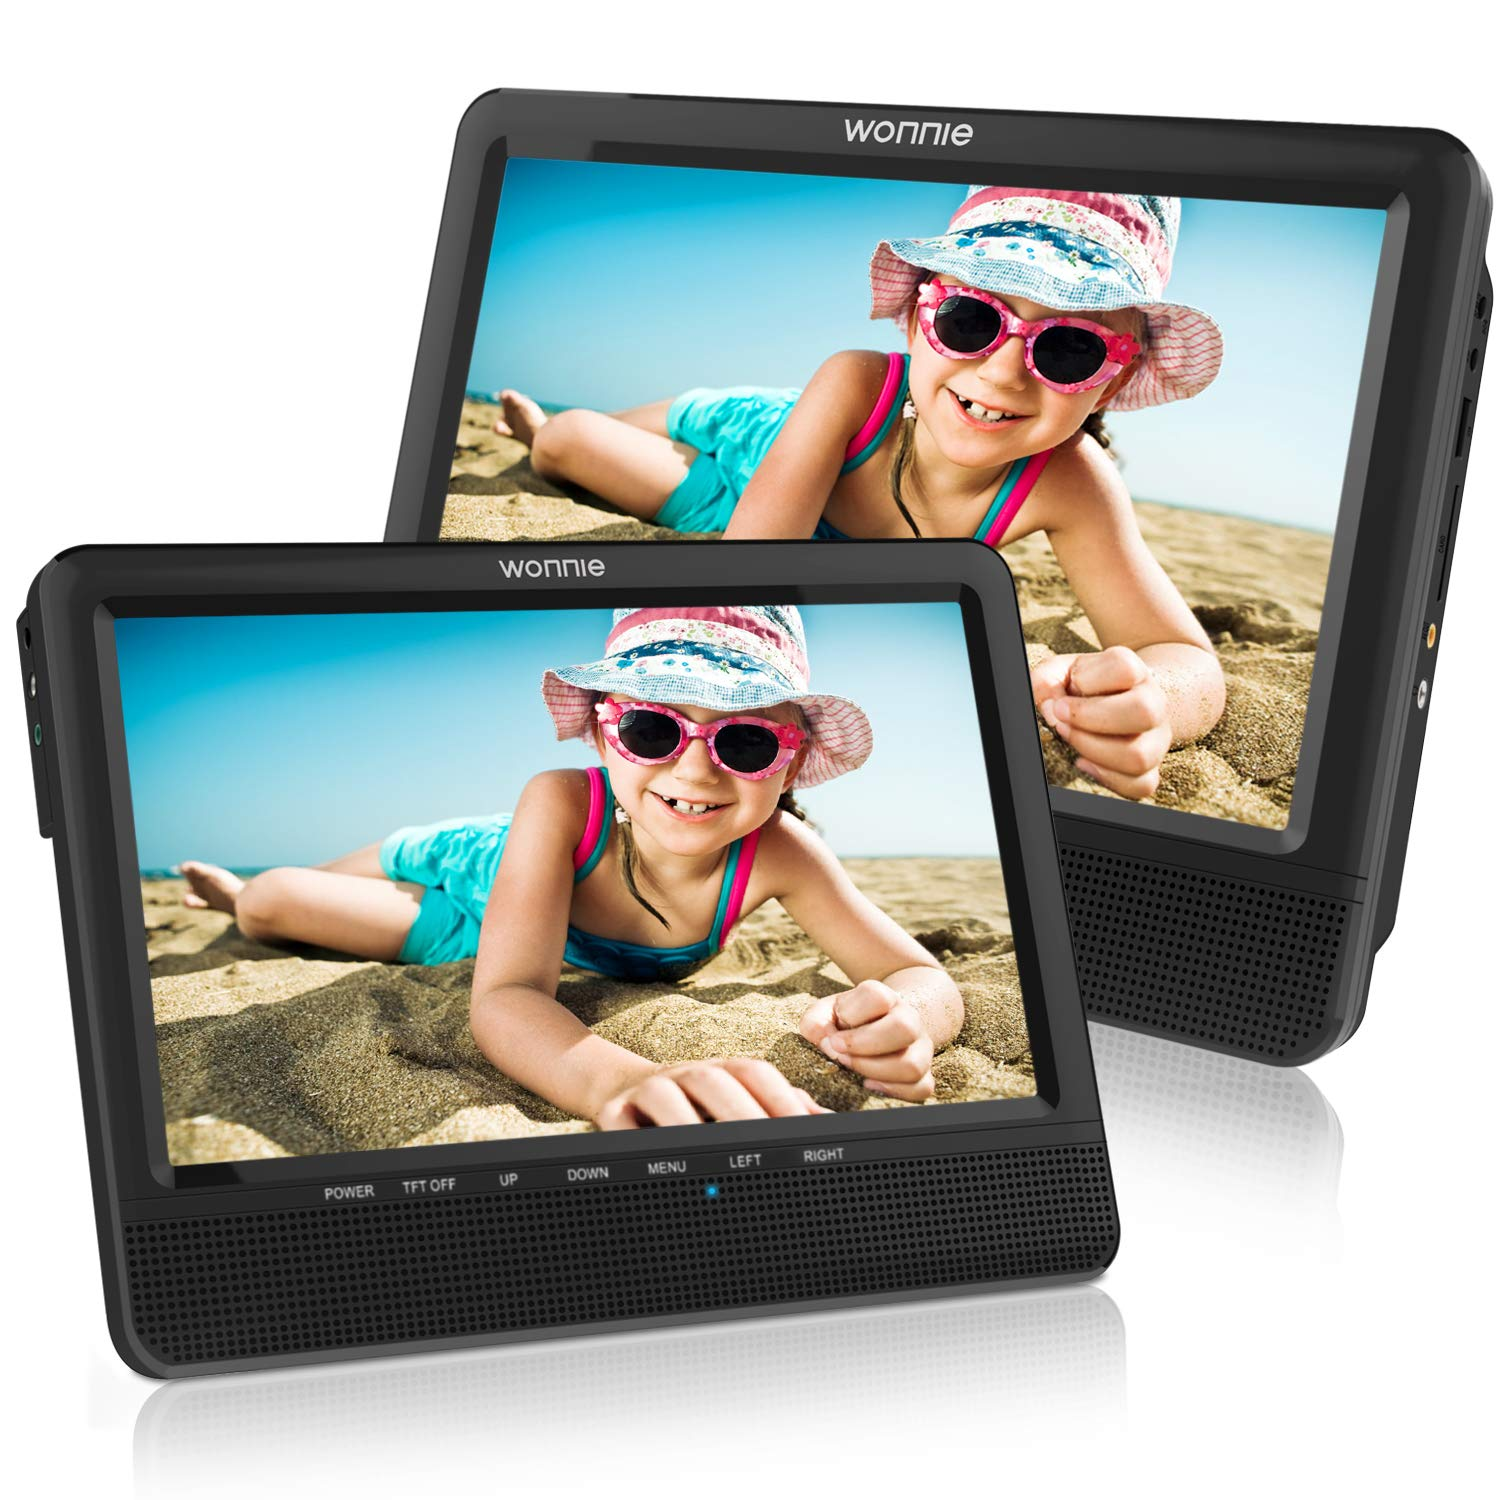 WONNIE 9.5'' Dual Screen DVD Player Portable for Car Travel Built-in 5 Hours Rechargeable Battery, Last Memory&USB&SD Slot(Two Screens Play Same Movie) by WONNIE